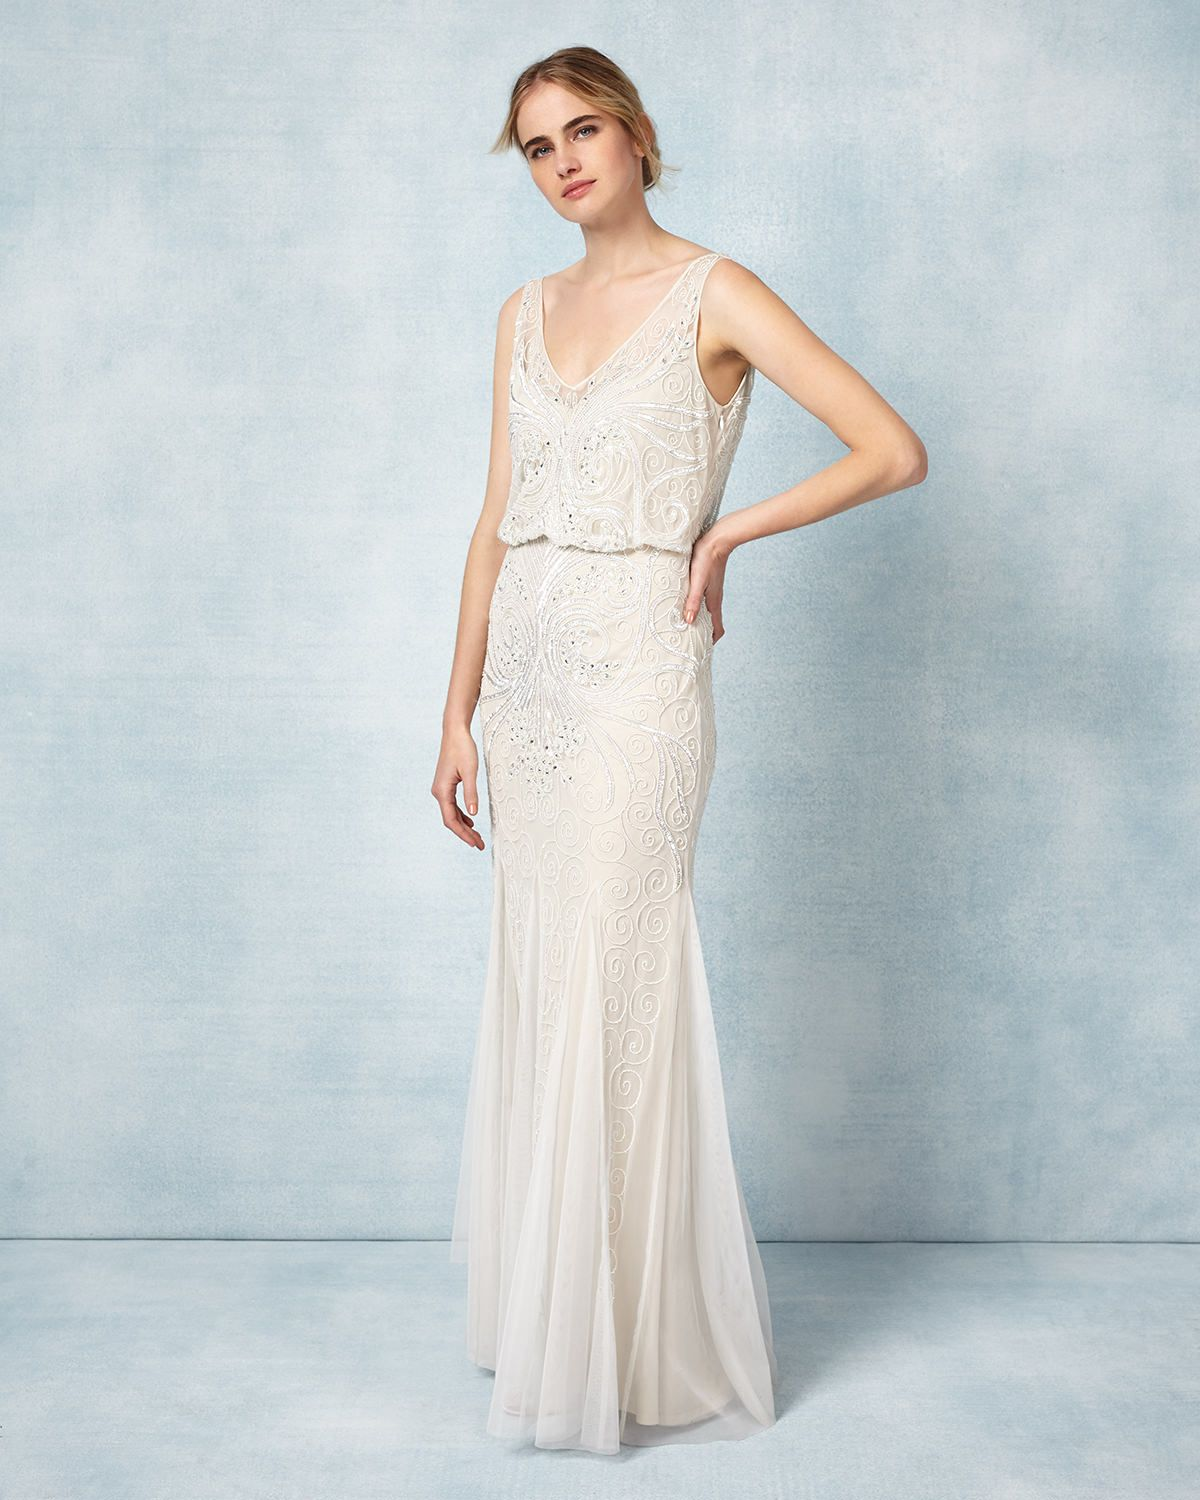 1930s Style Wedding Dresses Phase Eight Cathlyn Bridal Dress 495 00 At Vintaged High Street Wedding Dresses Wedding Dress Inspiration Informal Wedding Dresses